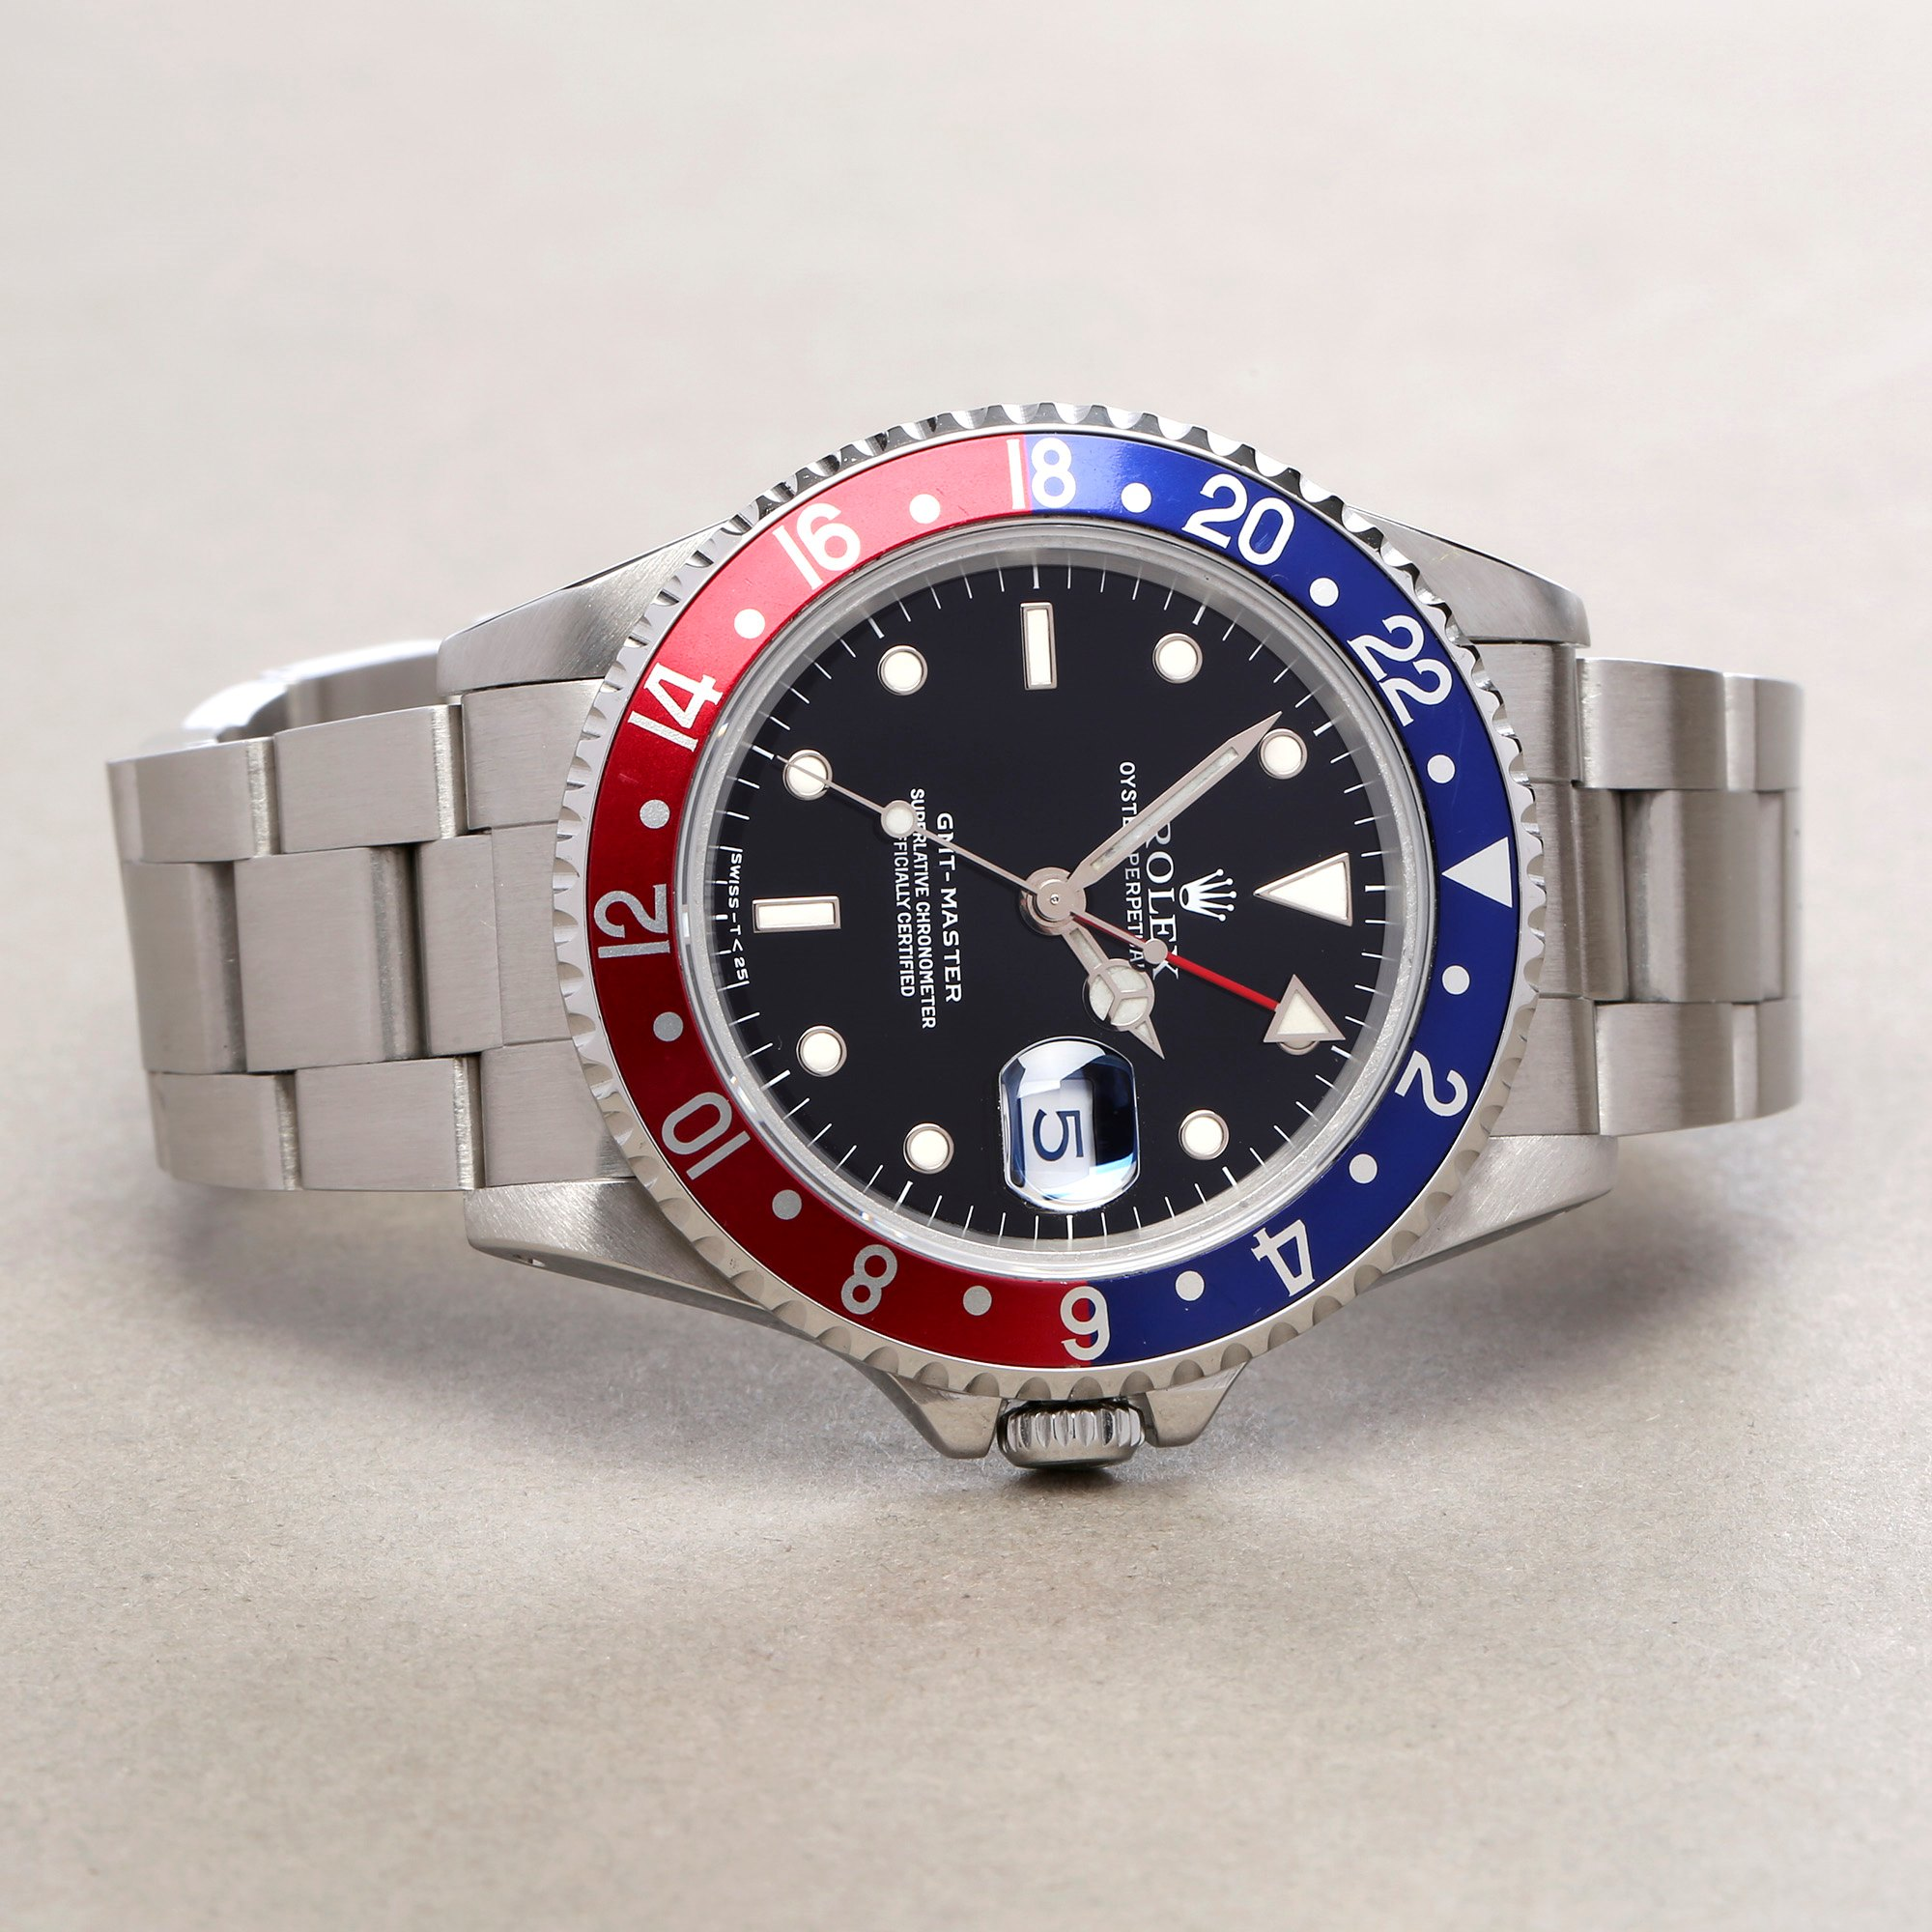 Rolex GMT-Master 16700 Men Stainless Steel Pepsi Serif Fat Font Watch - Image 10 of 11